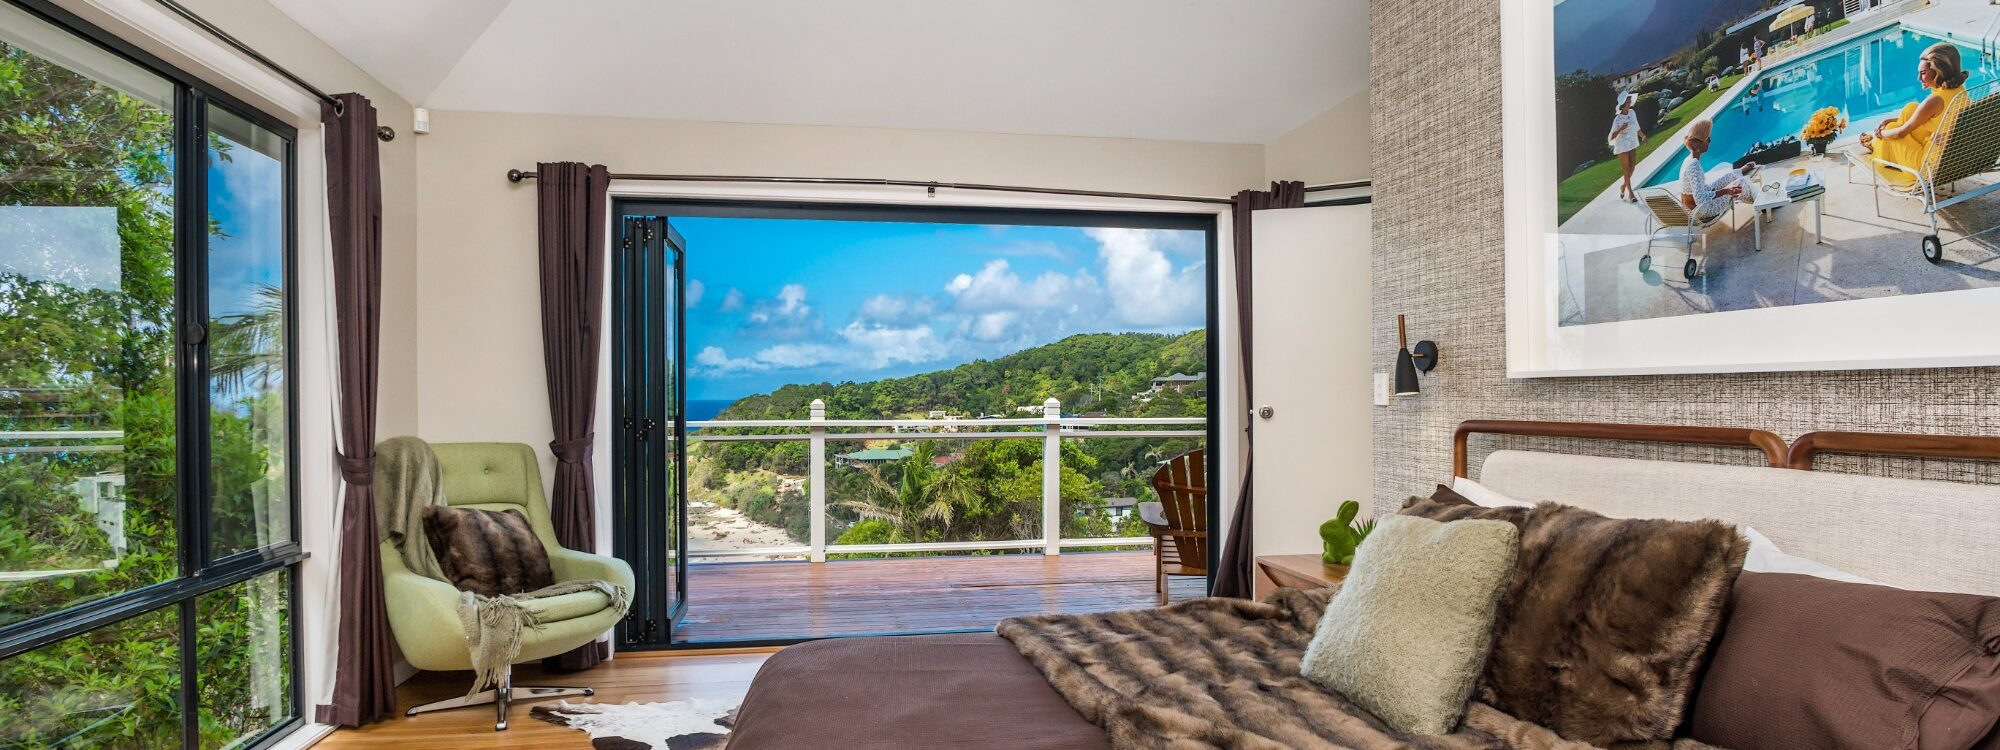 The Palms at Byron - Wategos Beach - Byron Bay - Master Bedroom